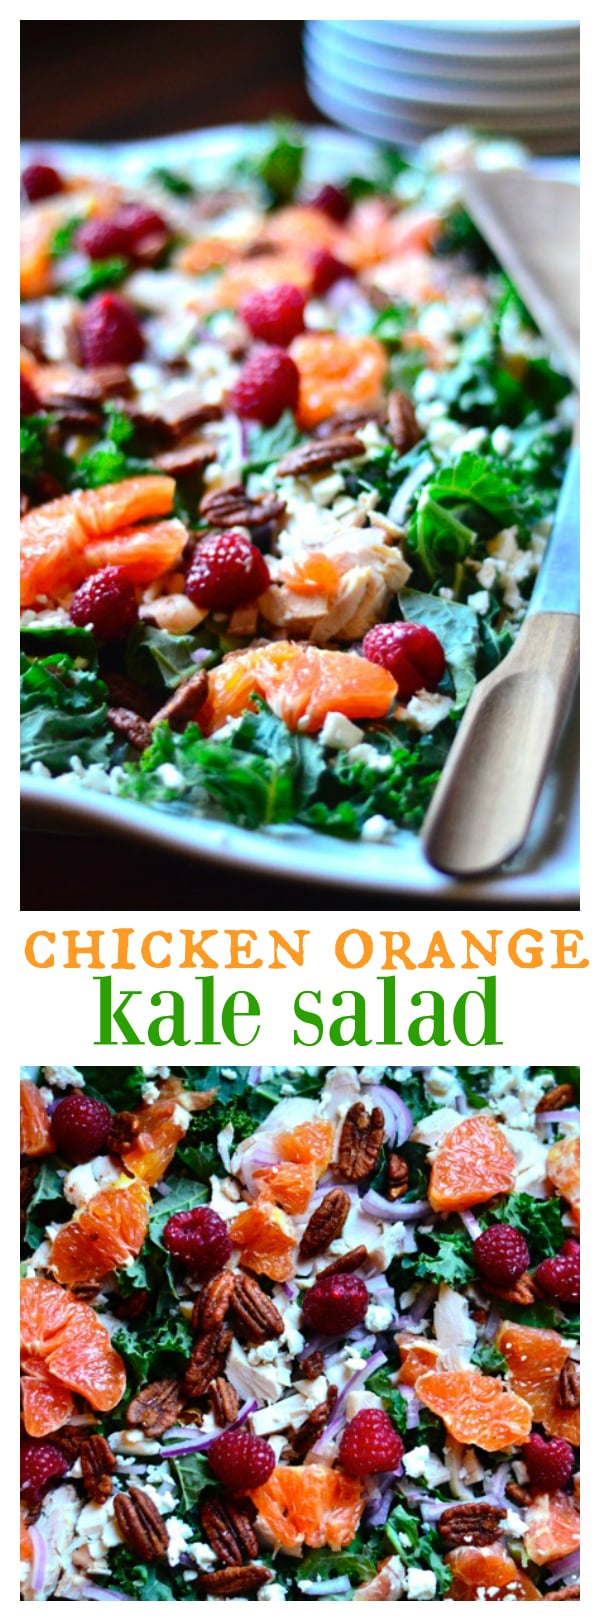 Chicken, Orange and Kale Salad